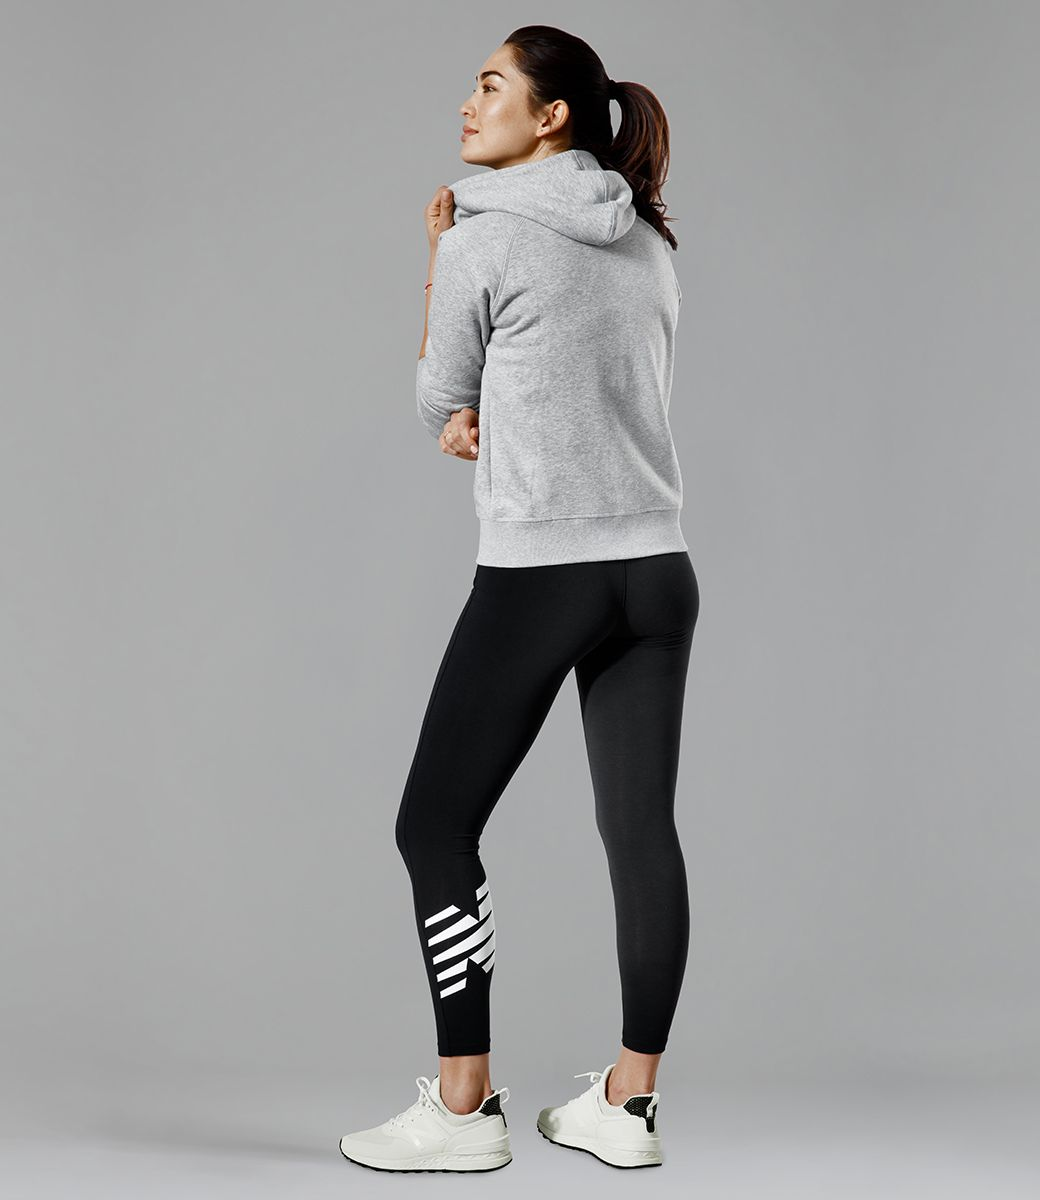 New Balance US-Womens-City-Comforts-Sporty-Urbanite,